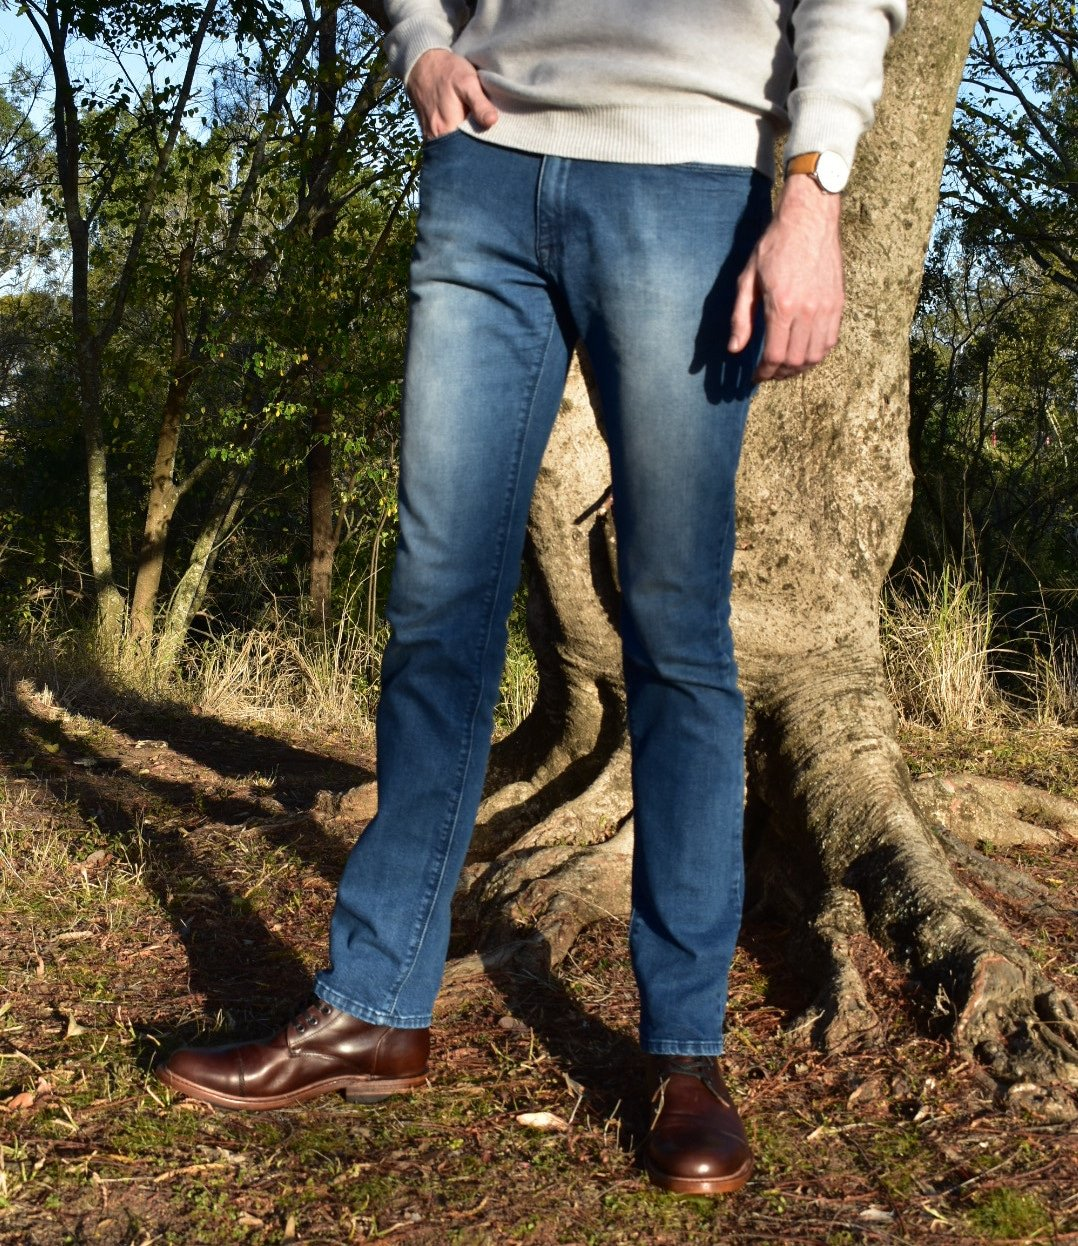 Model Wearing Mott & Bow Slim Laight Jeans with Liam Sweater Standing Up and Standing Next to Tree With Hand in Pocket and with White Sneakers - Torso Shot